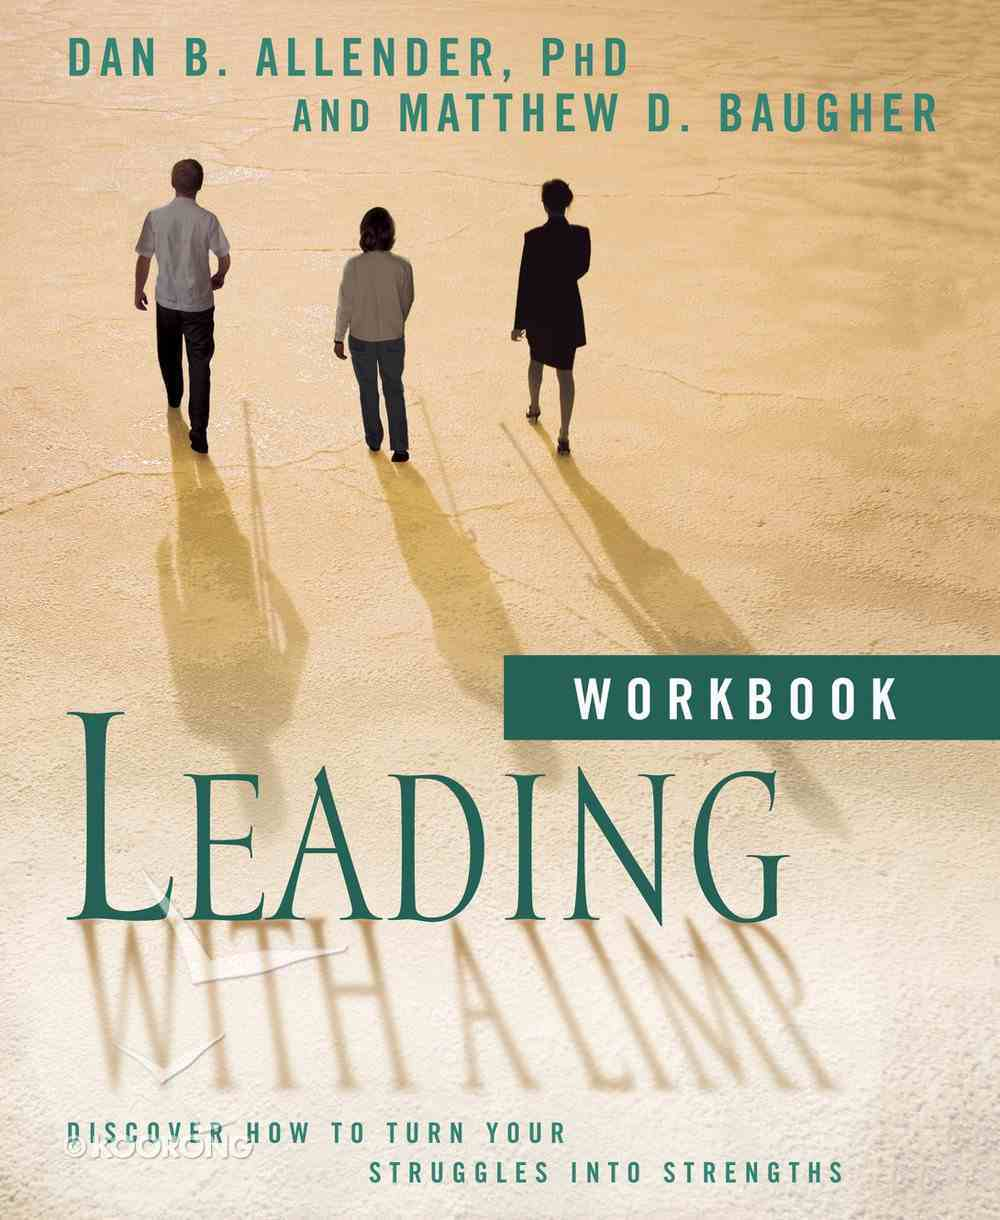 Leading With a Limp Workbook Paperback